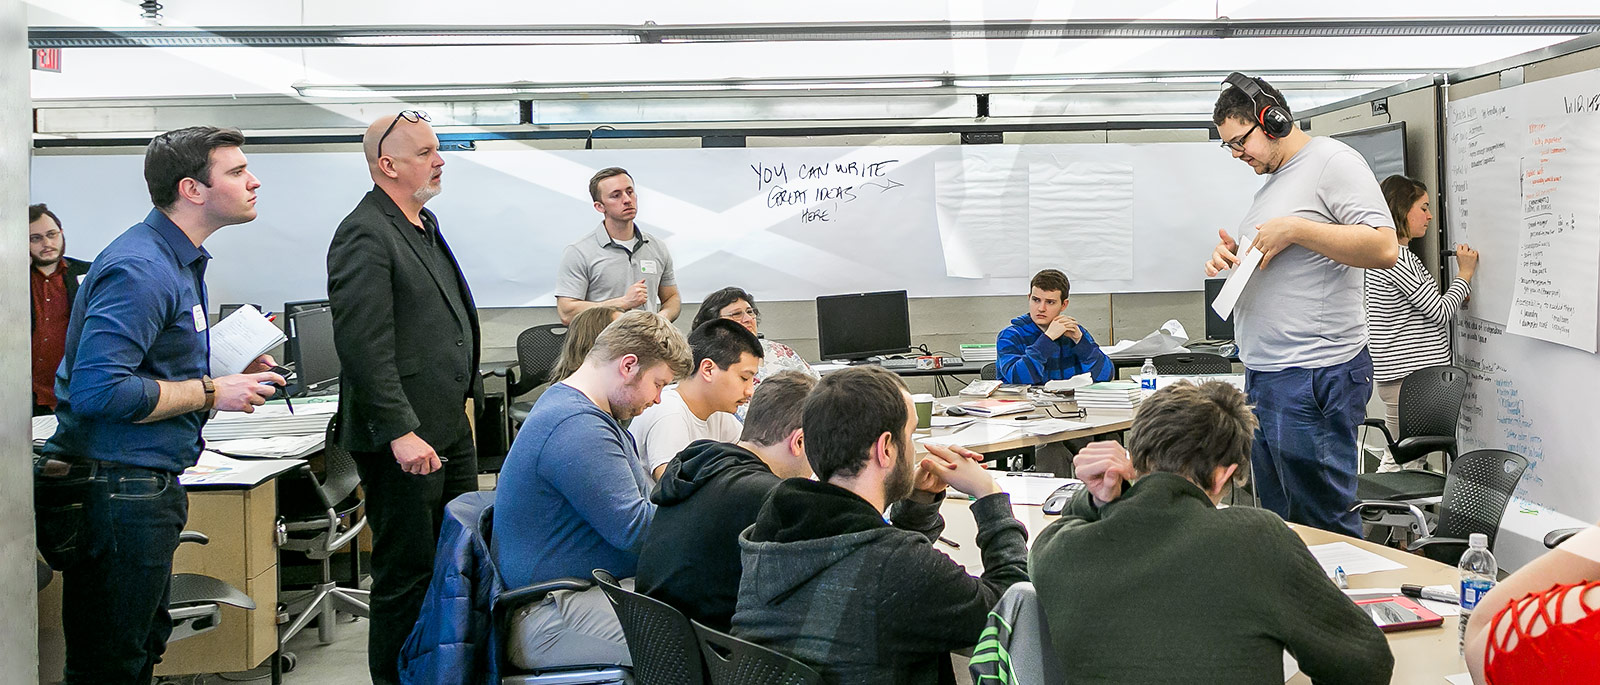 Ohio State faculty member Kyle Ezell looks on as students present their findings and collaborate during a brainstorm session.